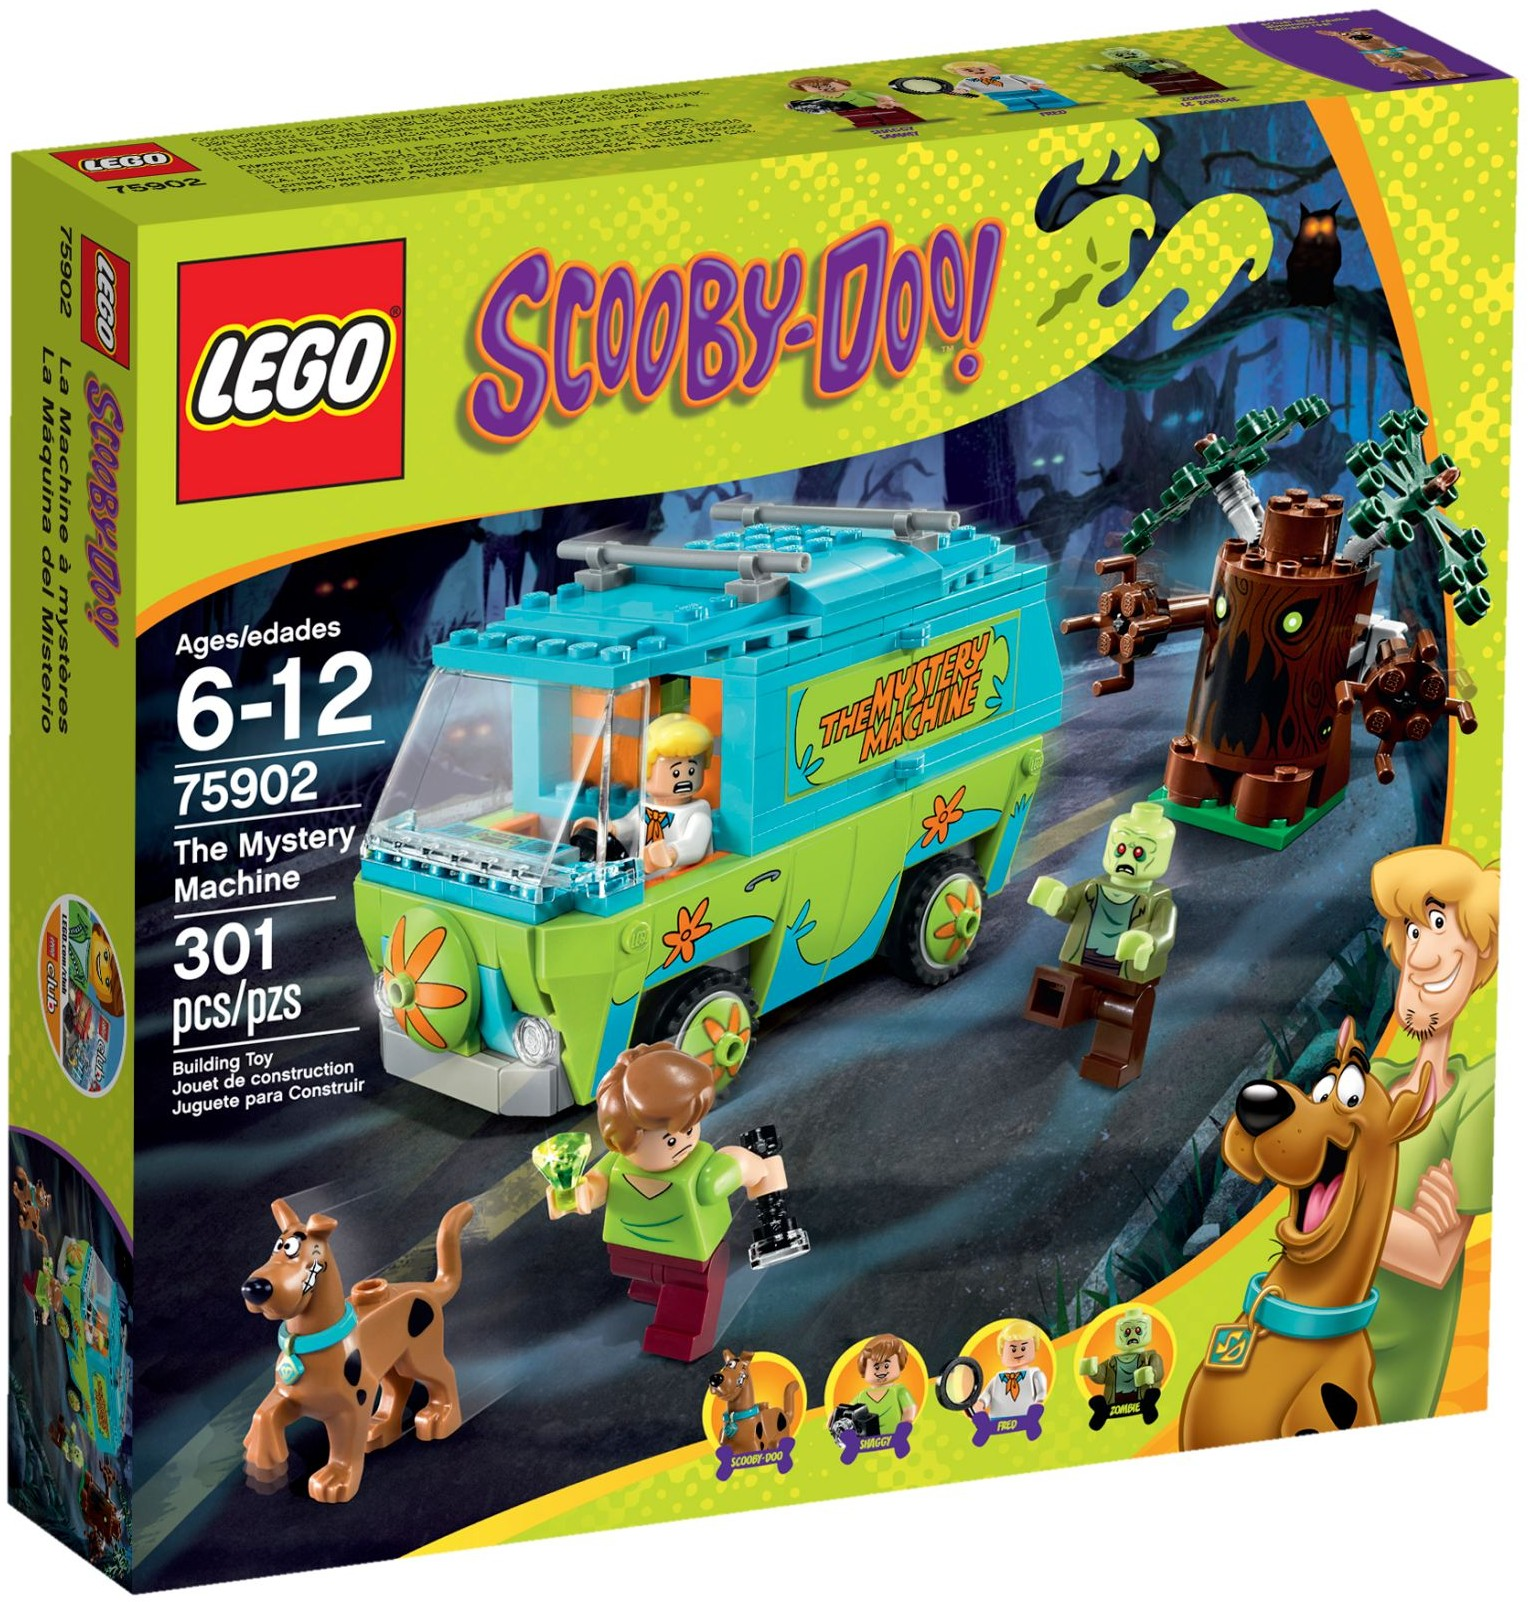 LEGO # 75902 SCOOBY DO THE MYSTERY MACHINE